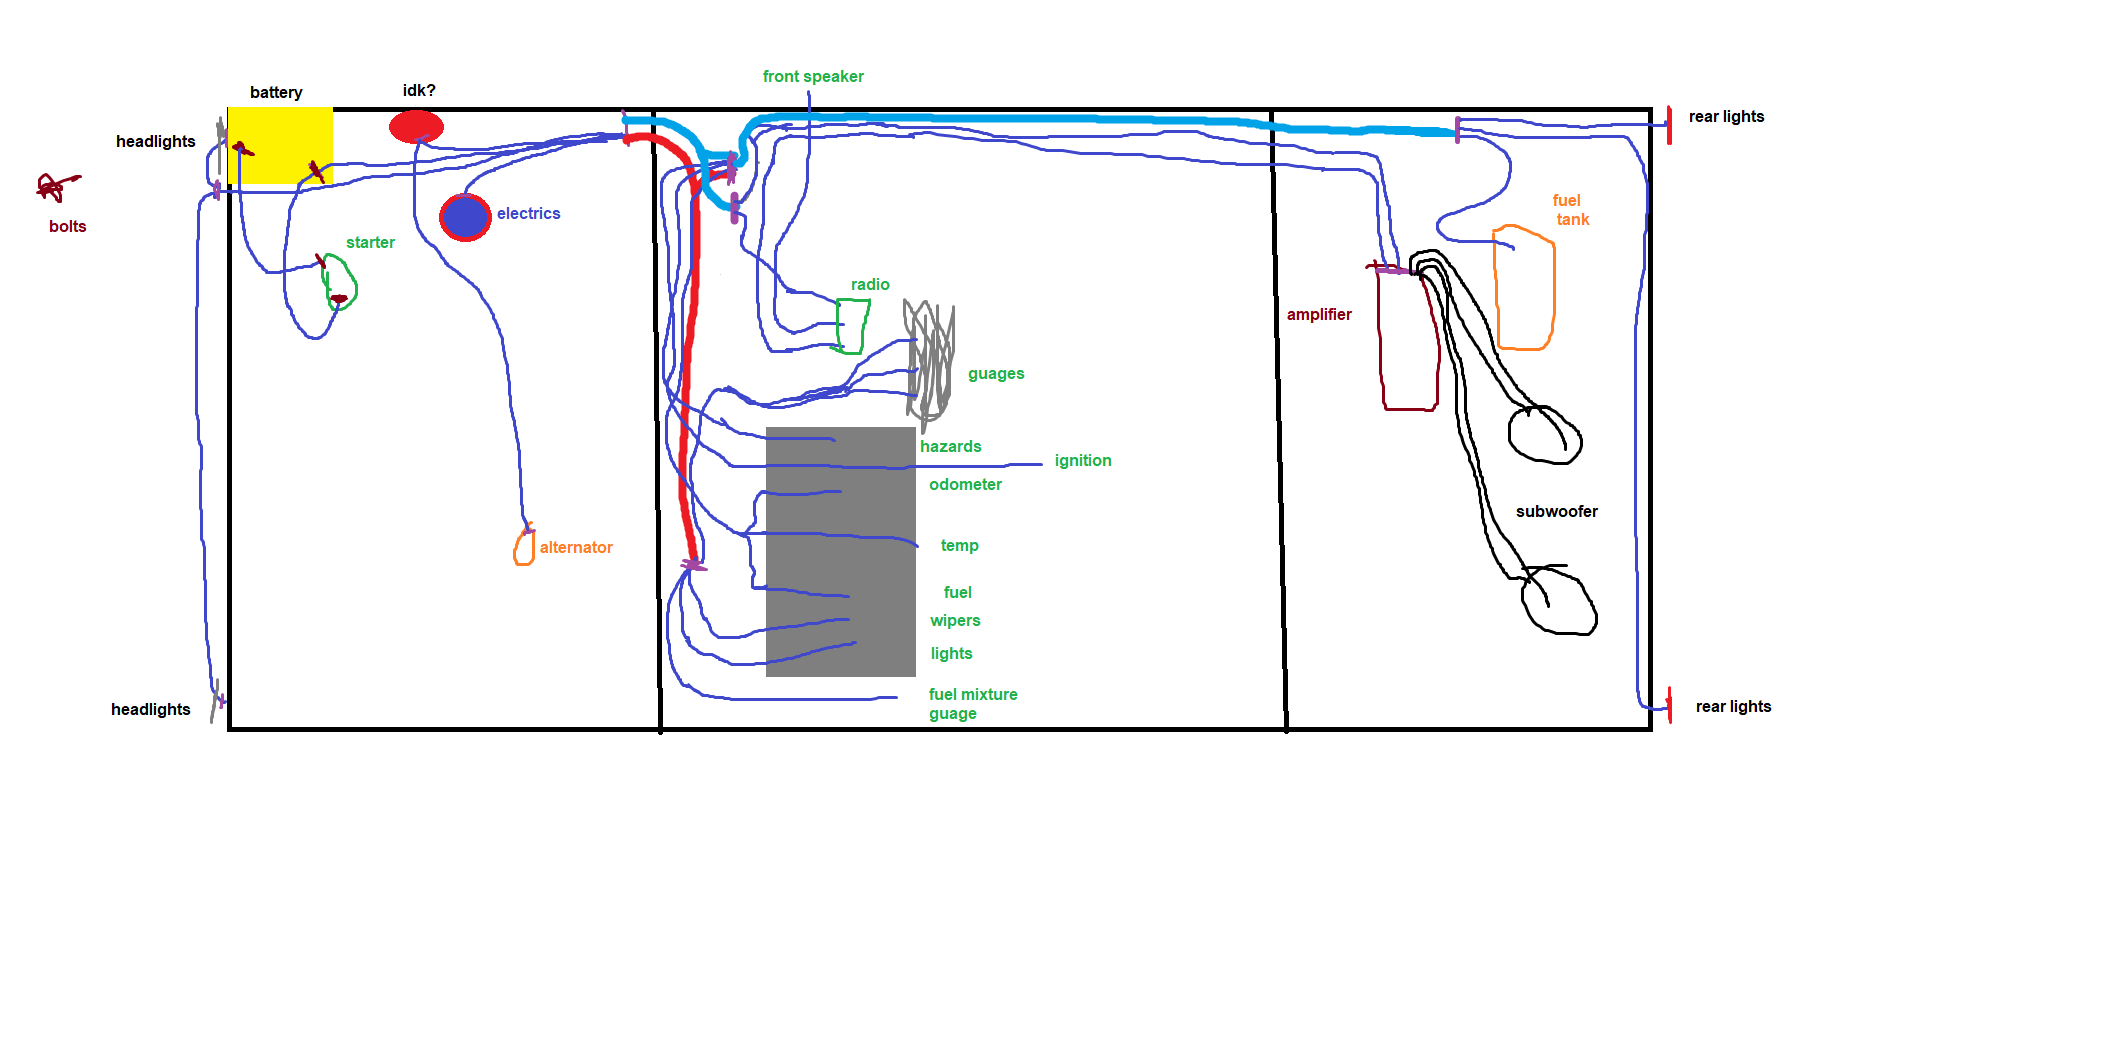 small resolution of wiring diagram for my car wiring diagram go wiring diagram for my car steam community wire